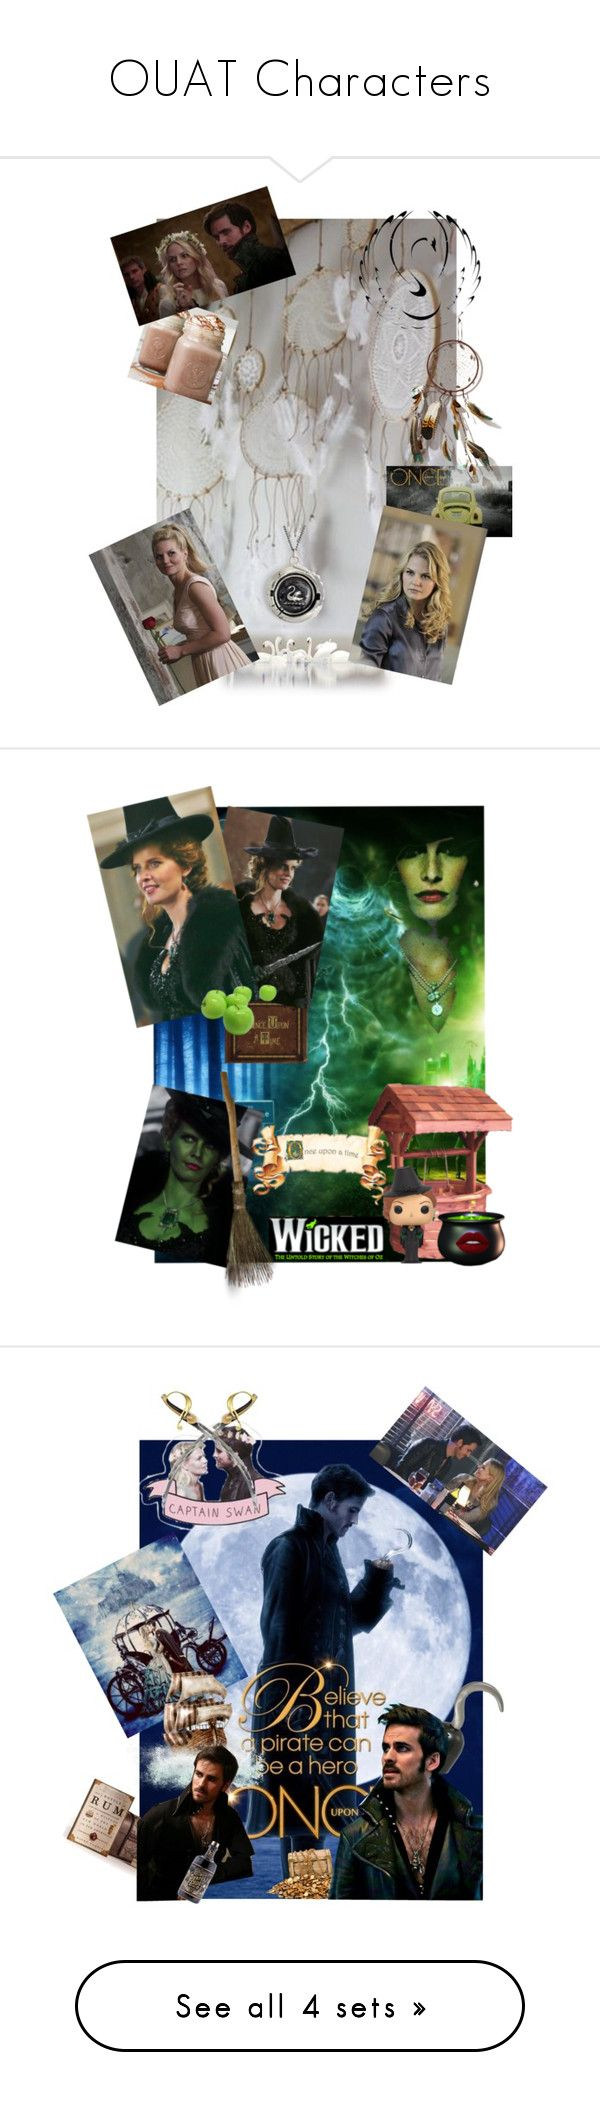 """""""OUAT Characters"""" by seyann on Polyvore featuring art"""